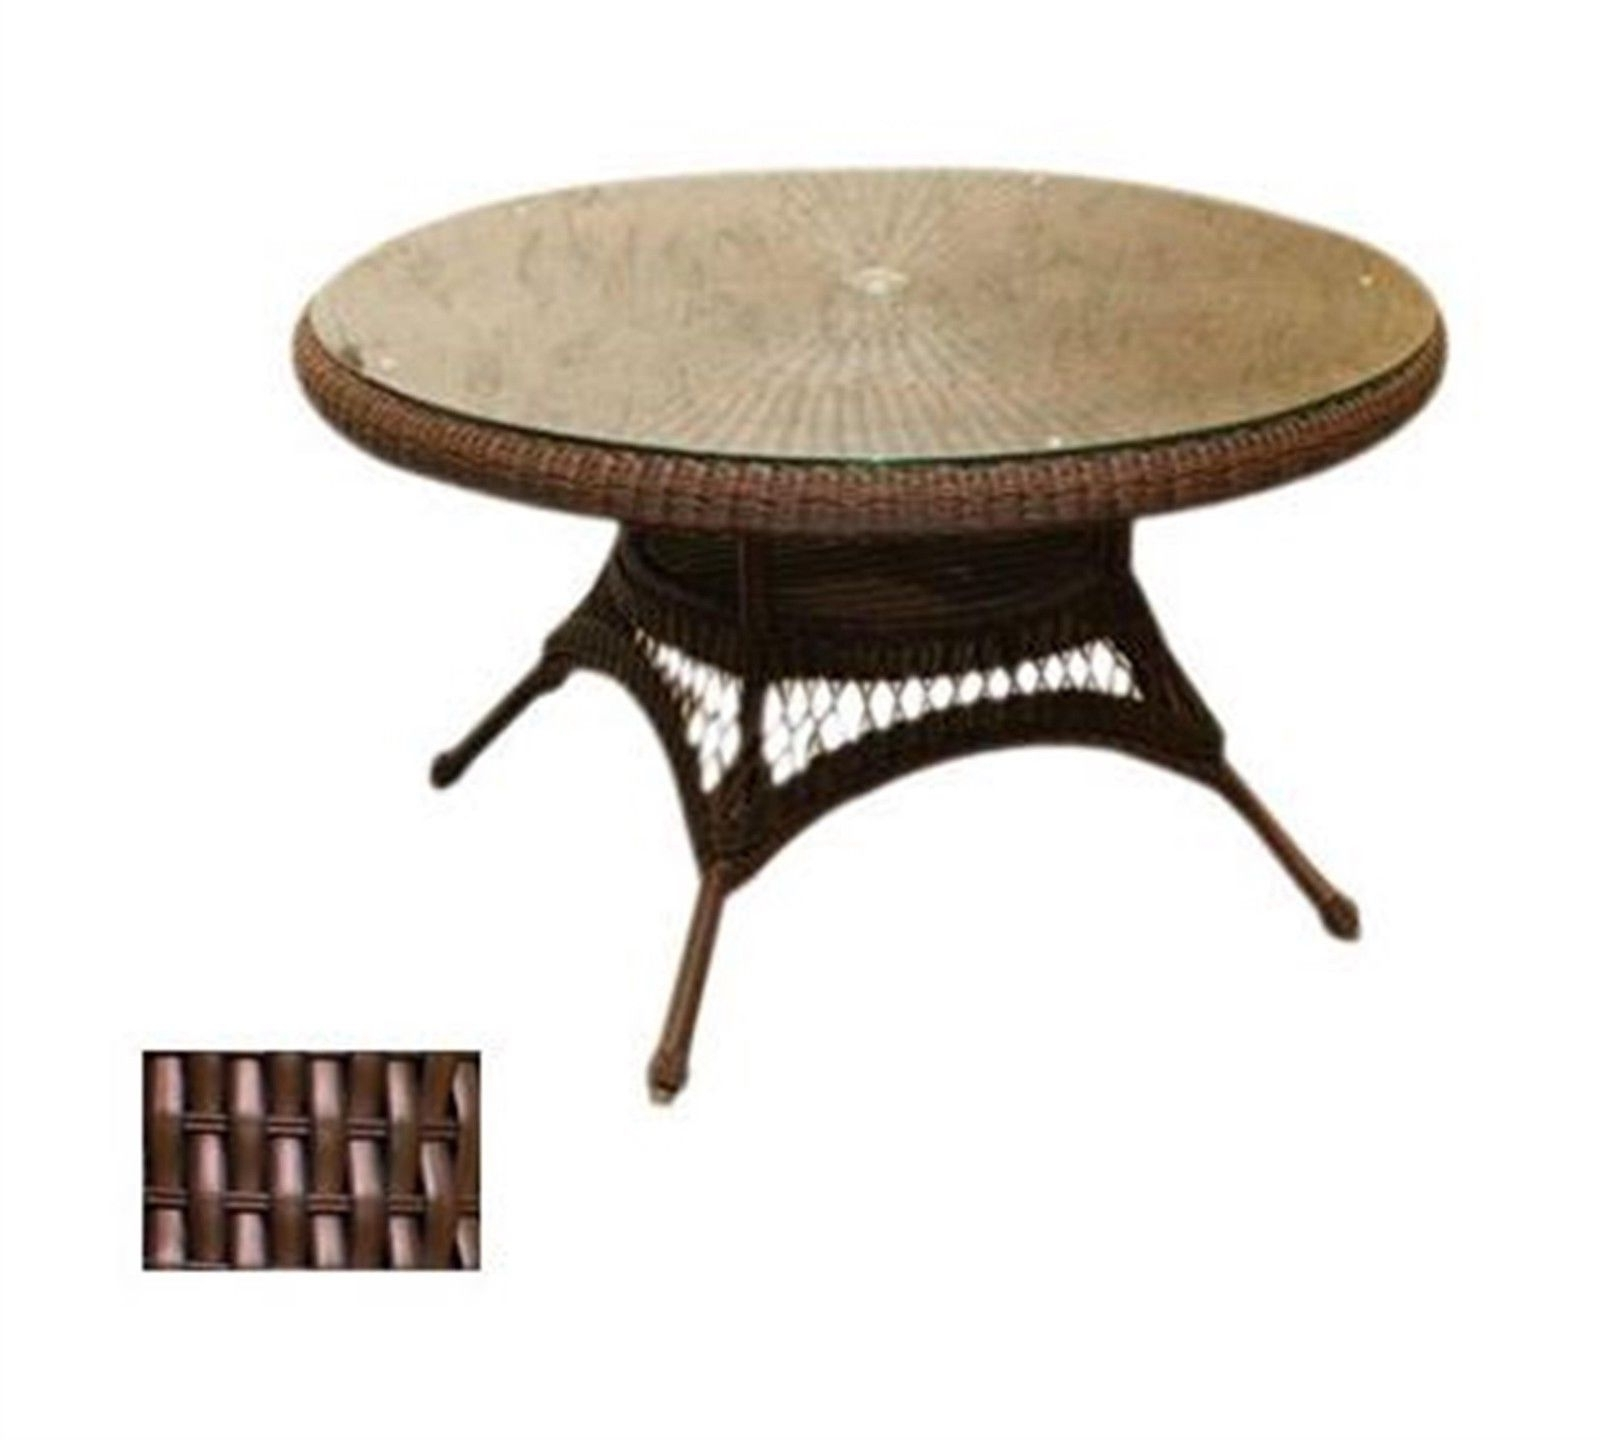 Tortuga Outdoor Lexington Dining Table Lex Table Finish Java Fabric Intended For Best And Newest Outdoor Tortuga Dining Tables (View 11 of 25)